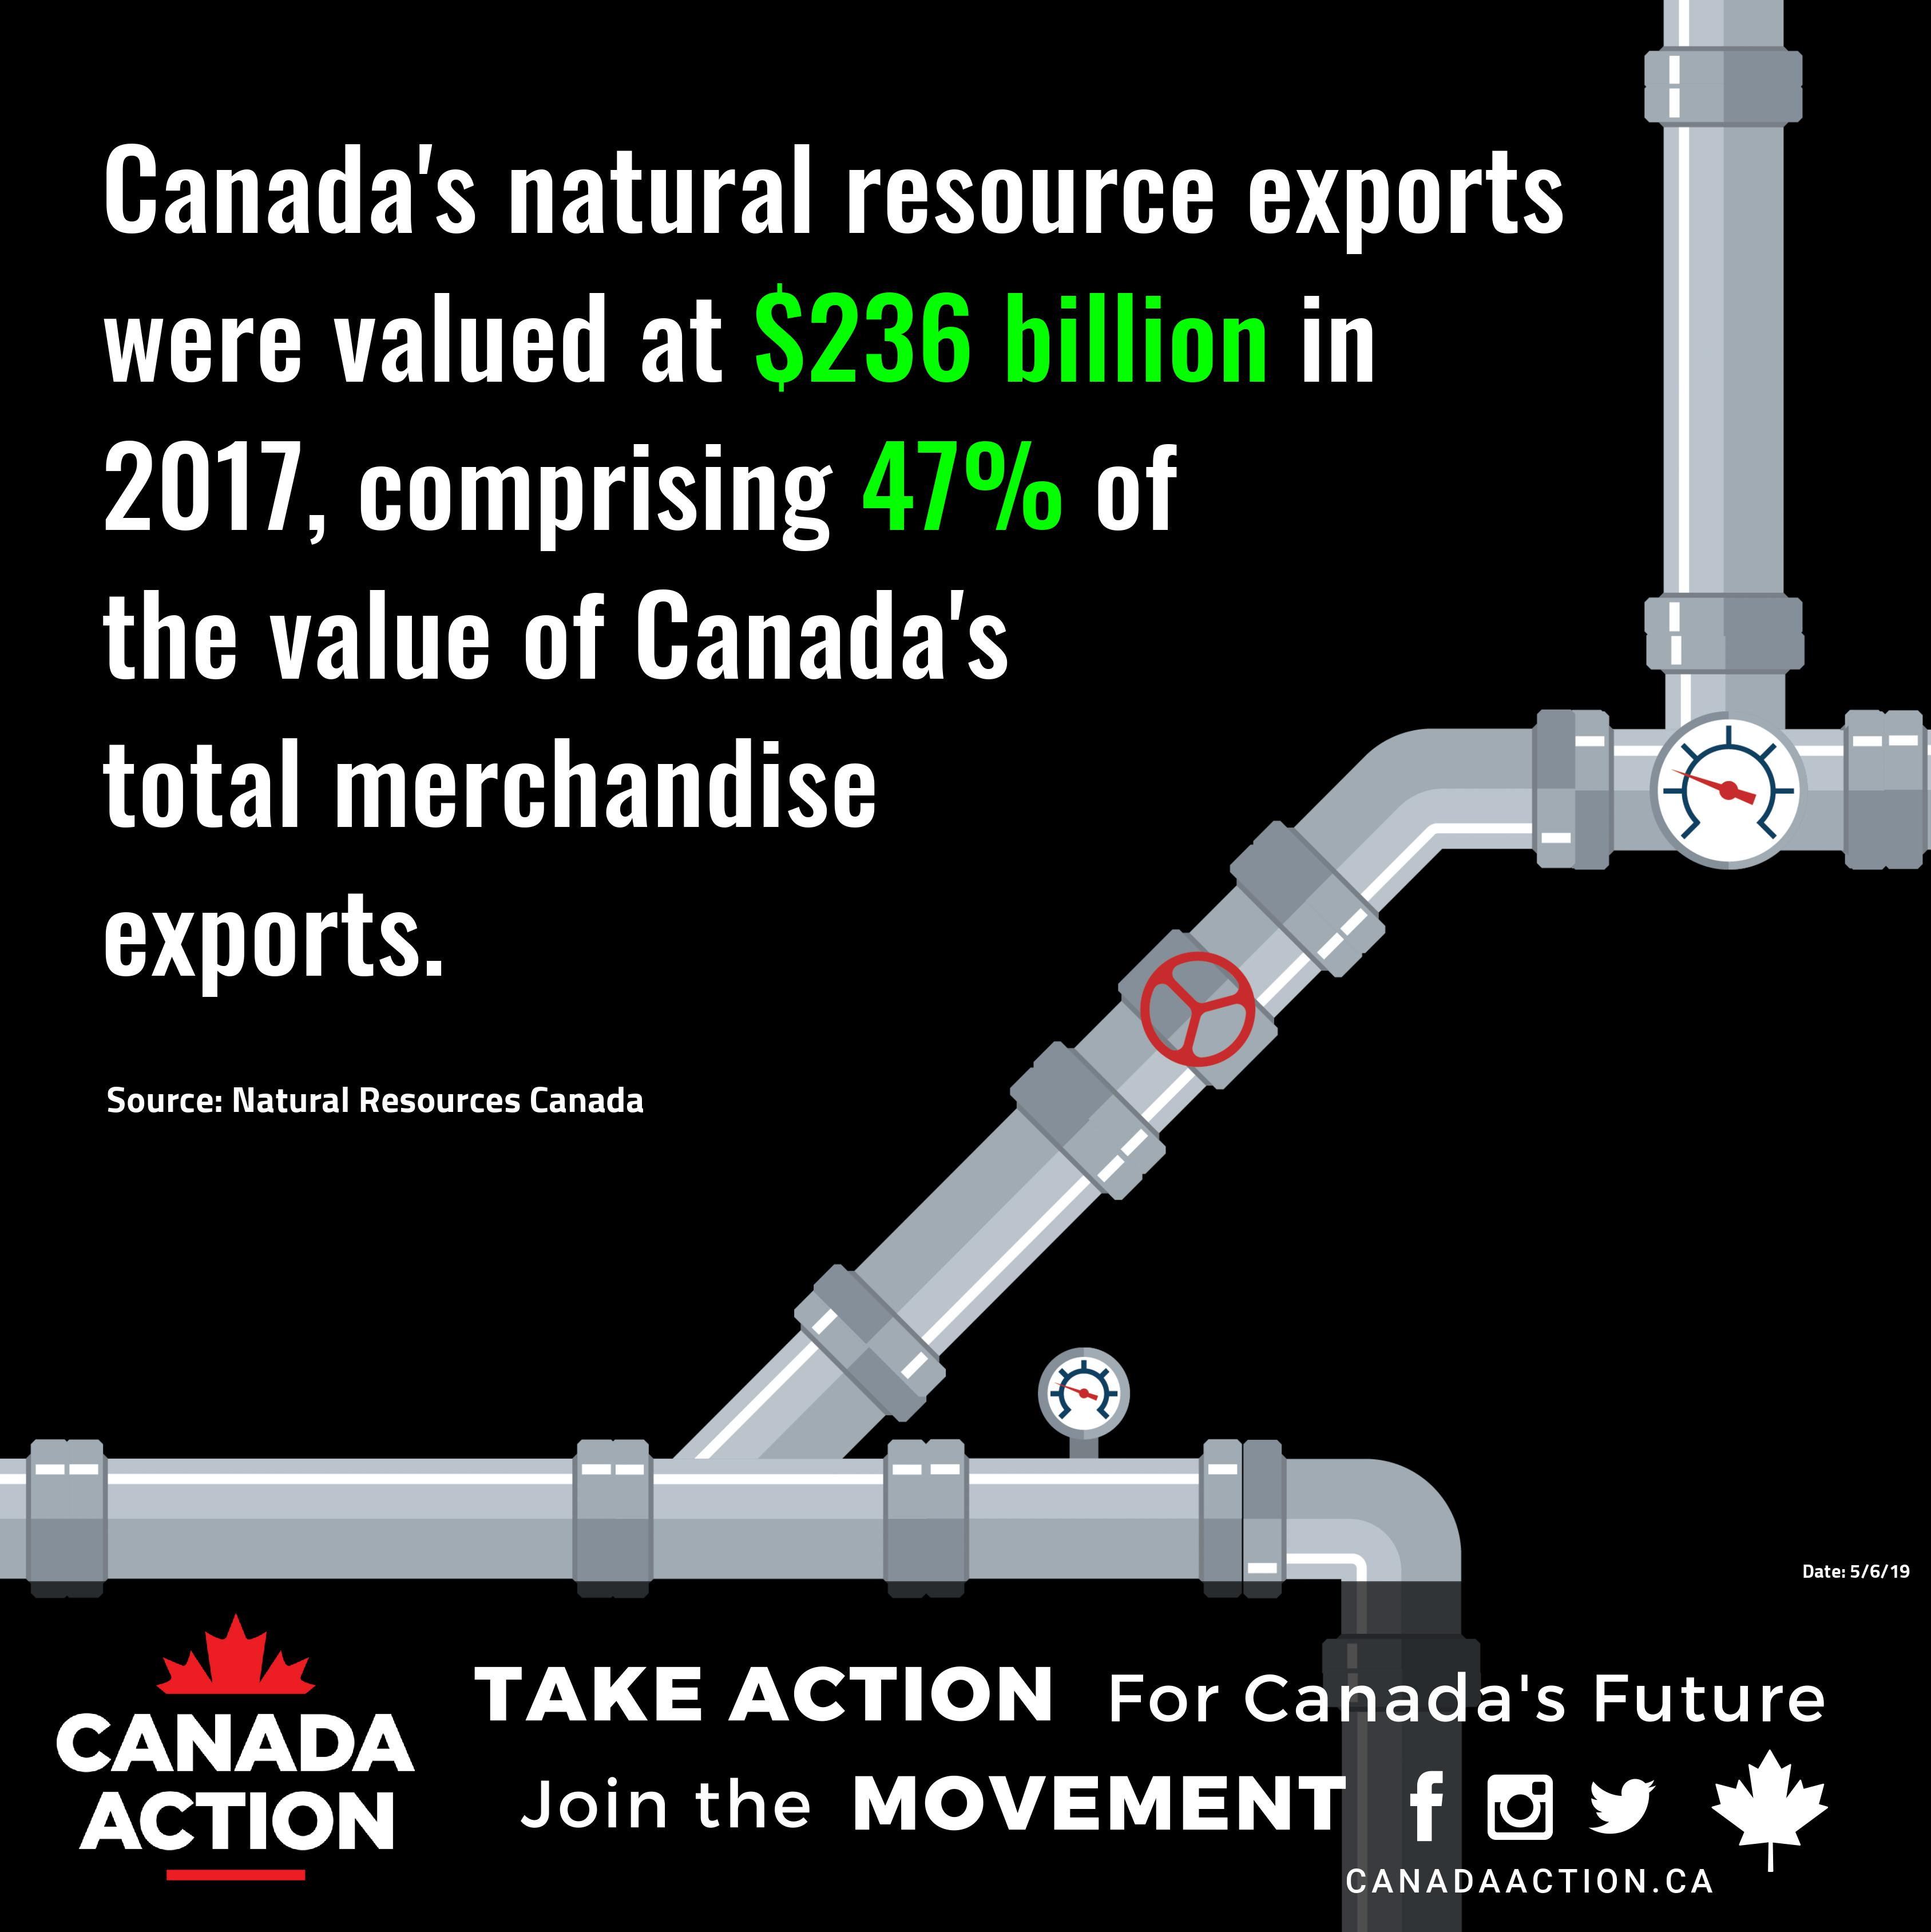 Canadian Natural Resource Exports Total Merchandise Value 2017